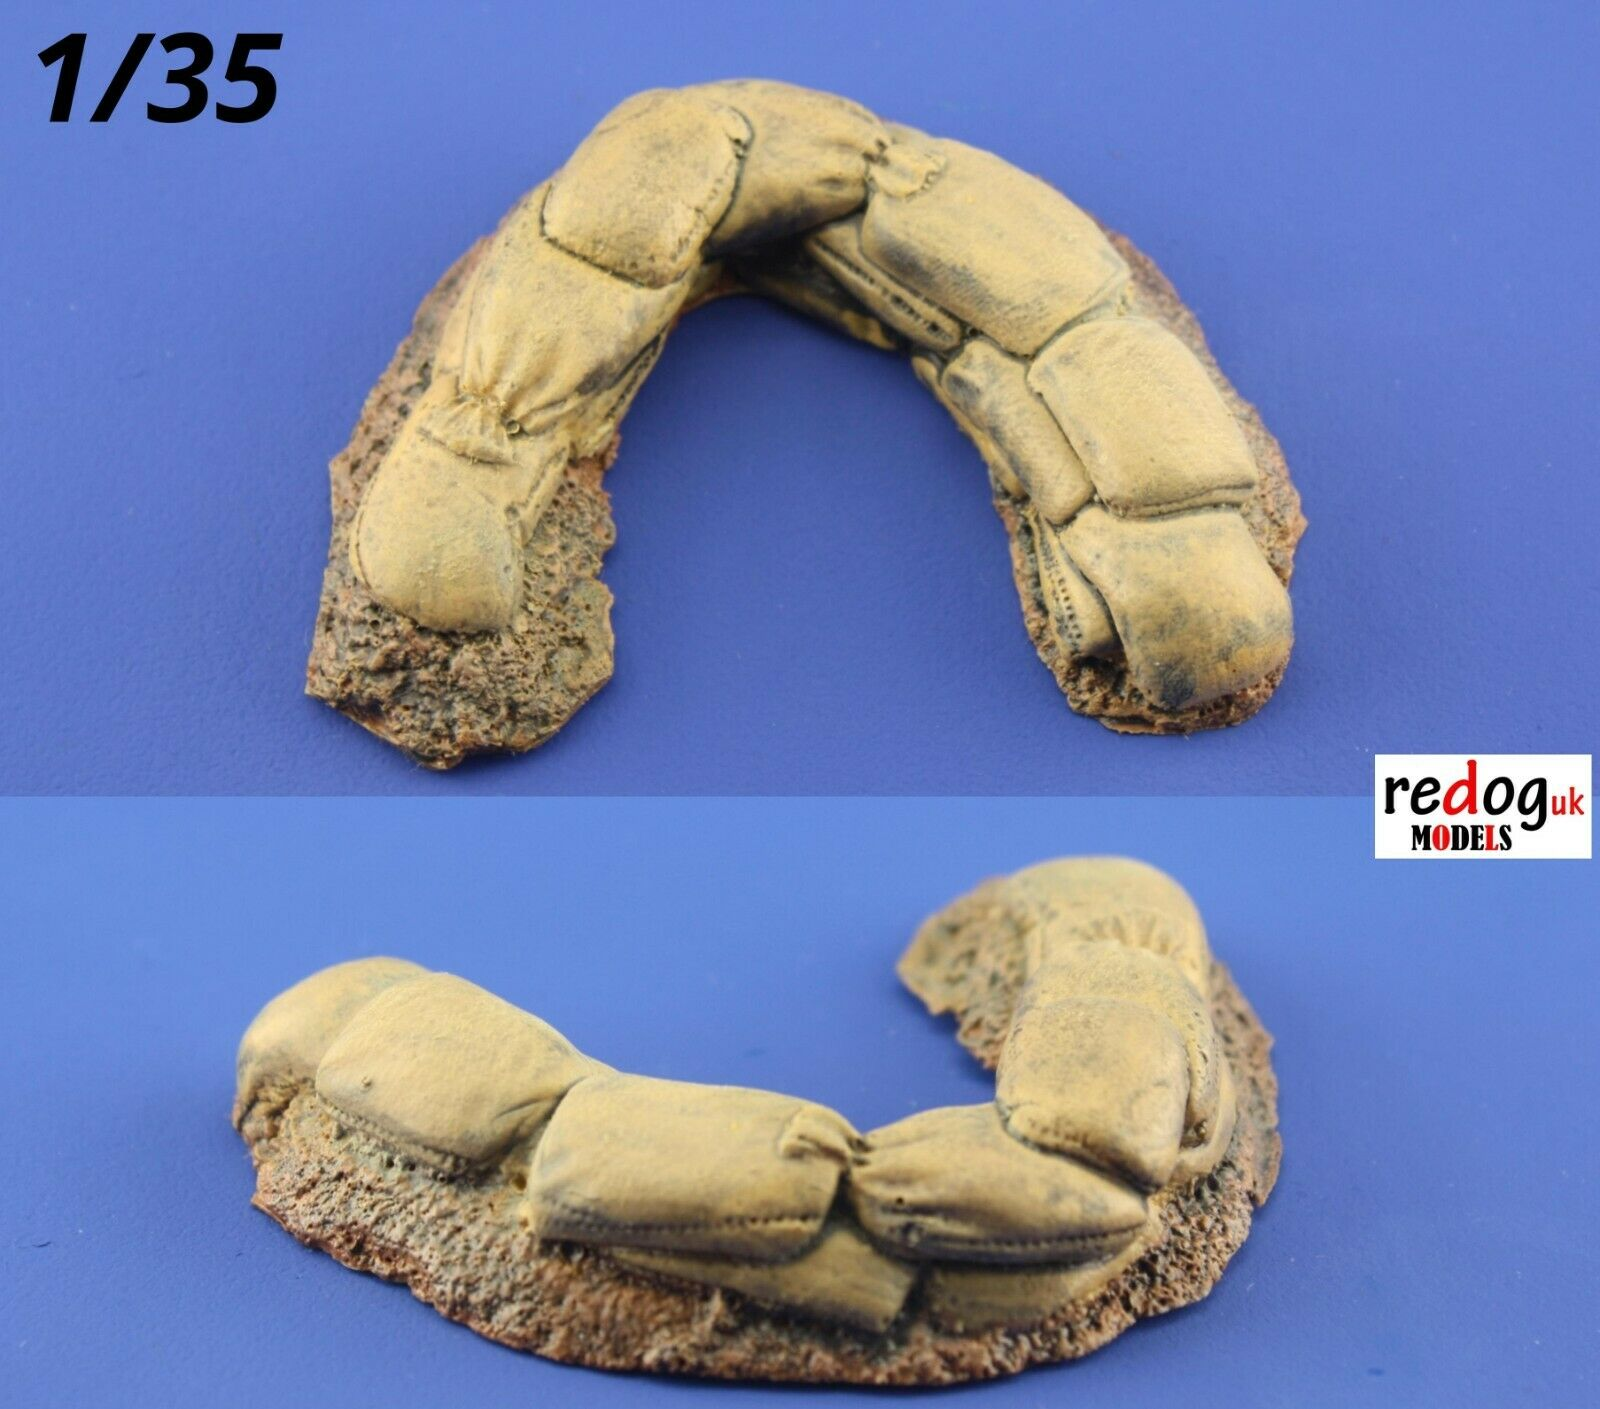 1/35 Redog Resin Military Scale Model Sand Bag Wall Machine Gun Emplacement - redoguk